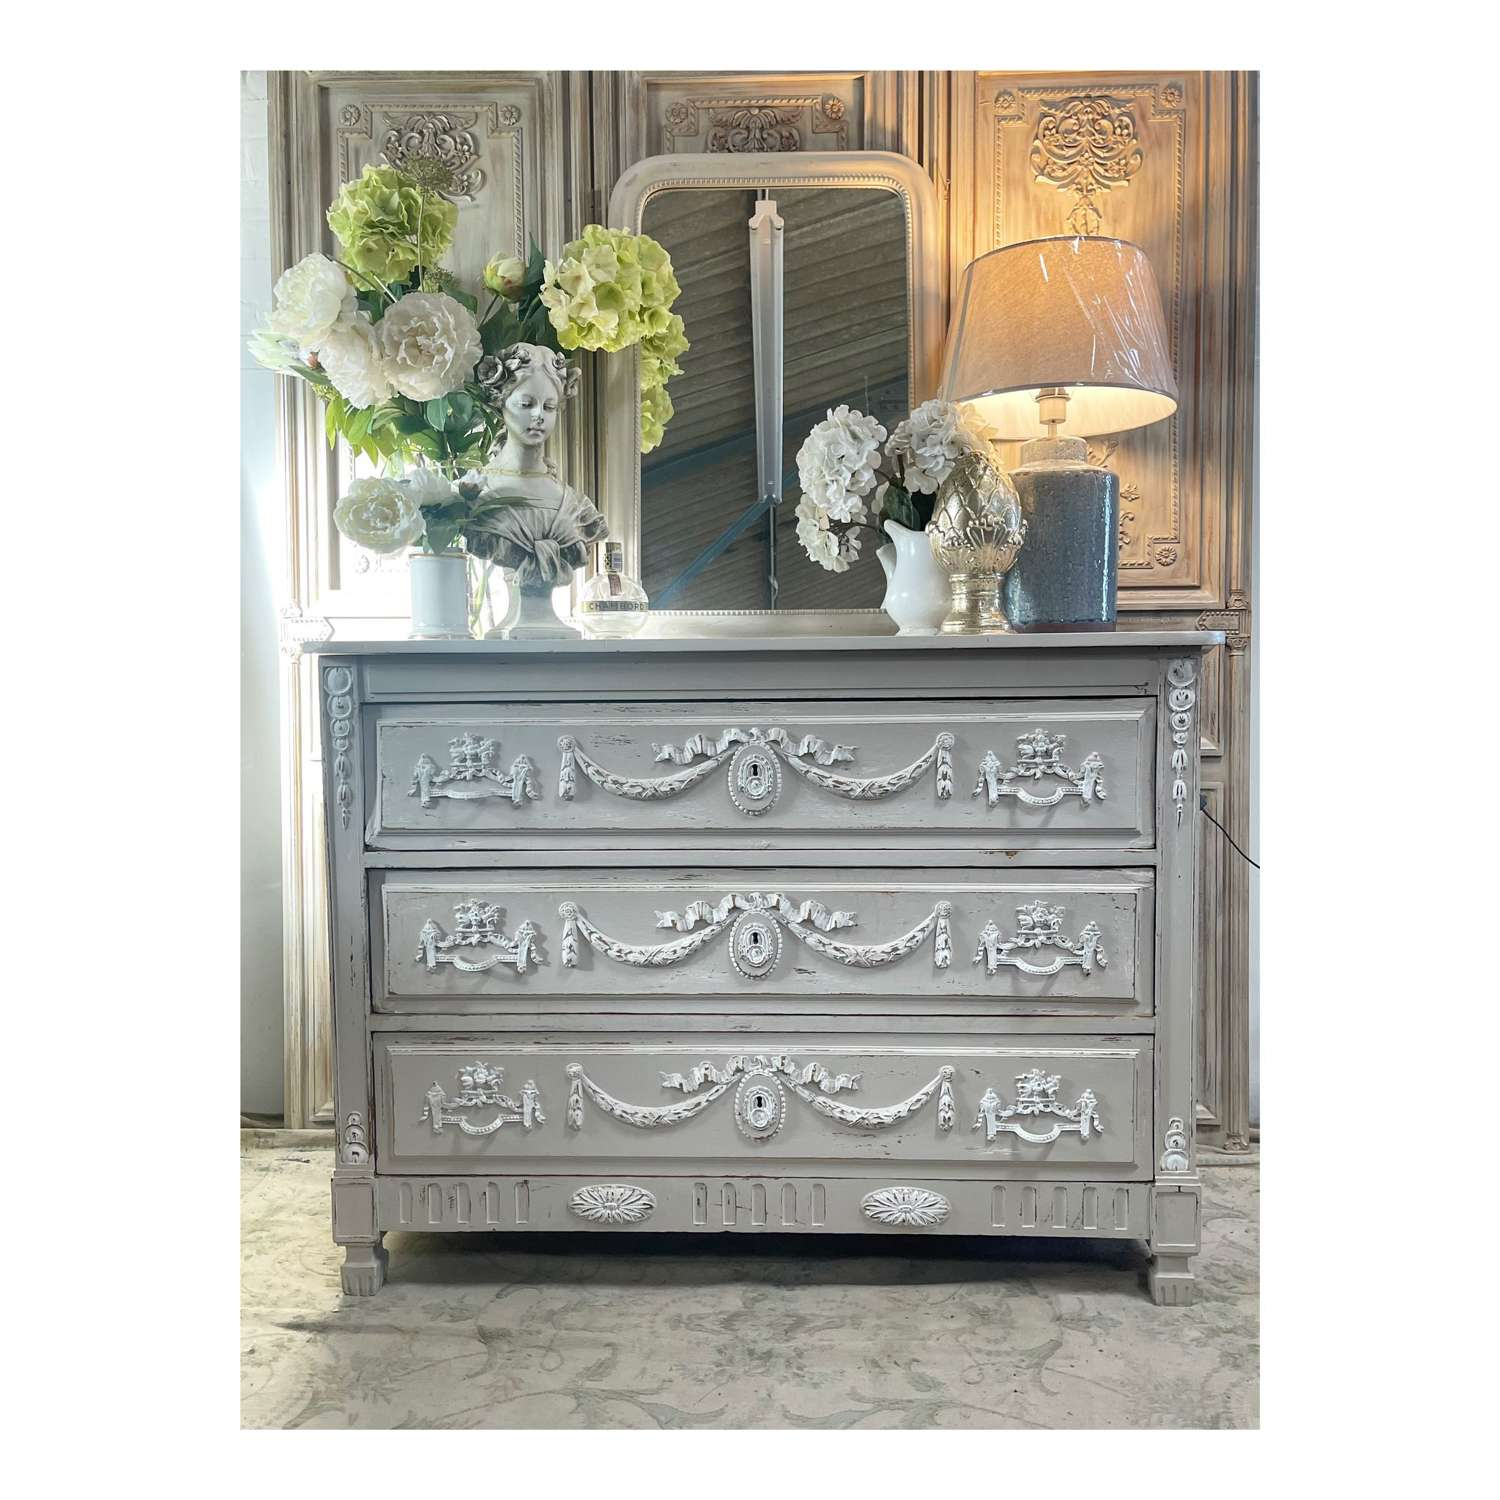 Chic & stunning French chest of drawers